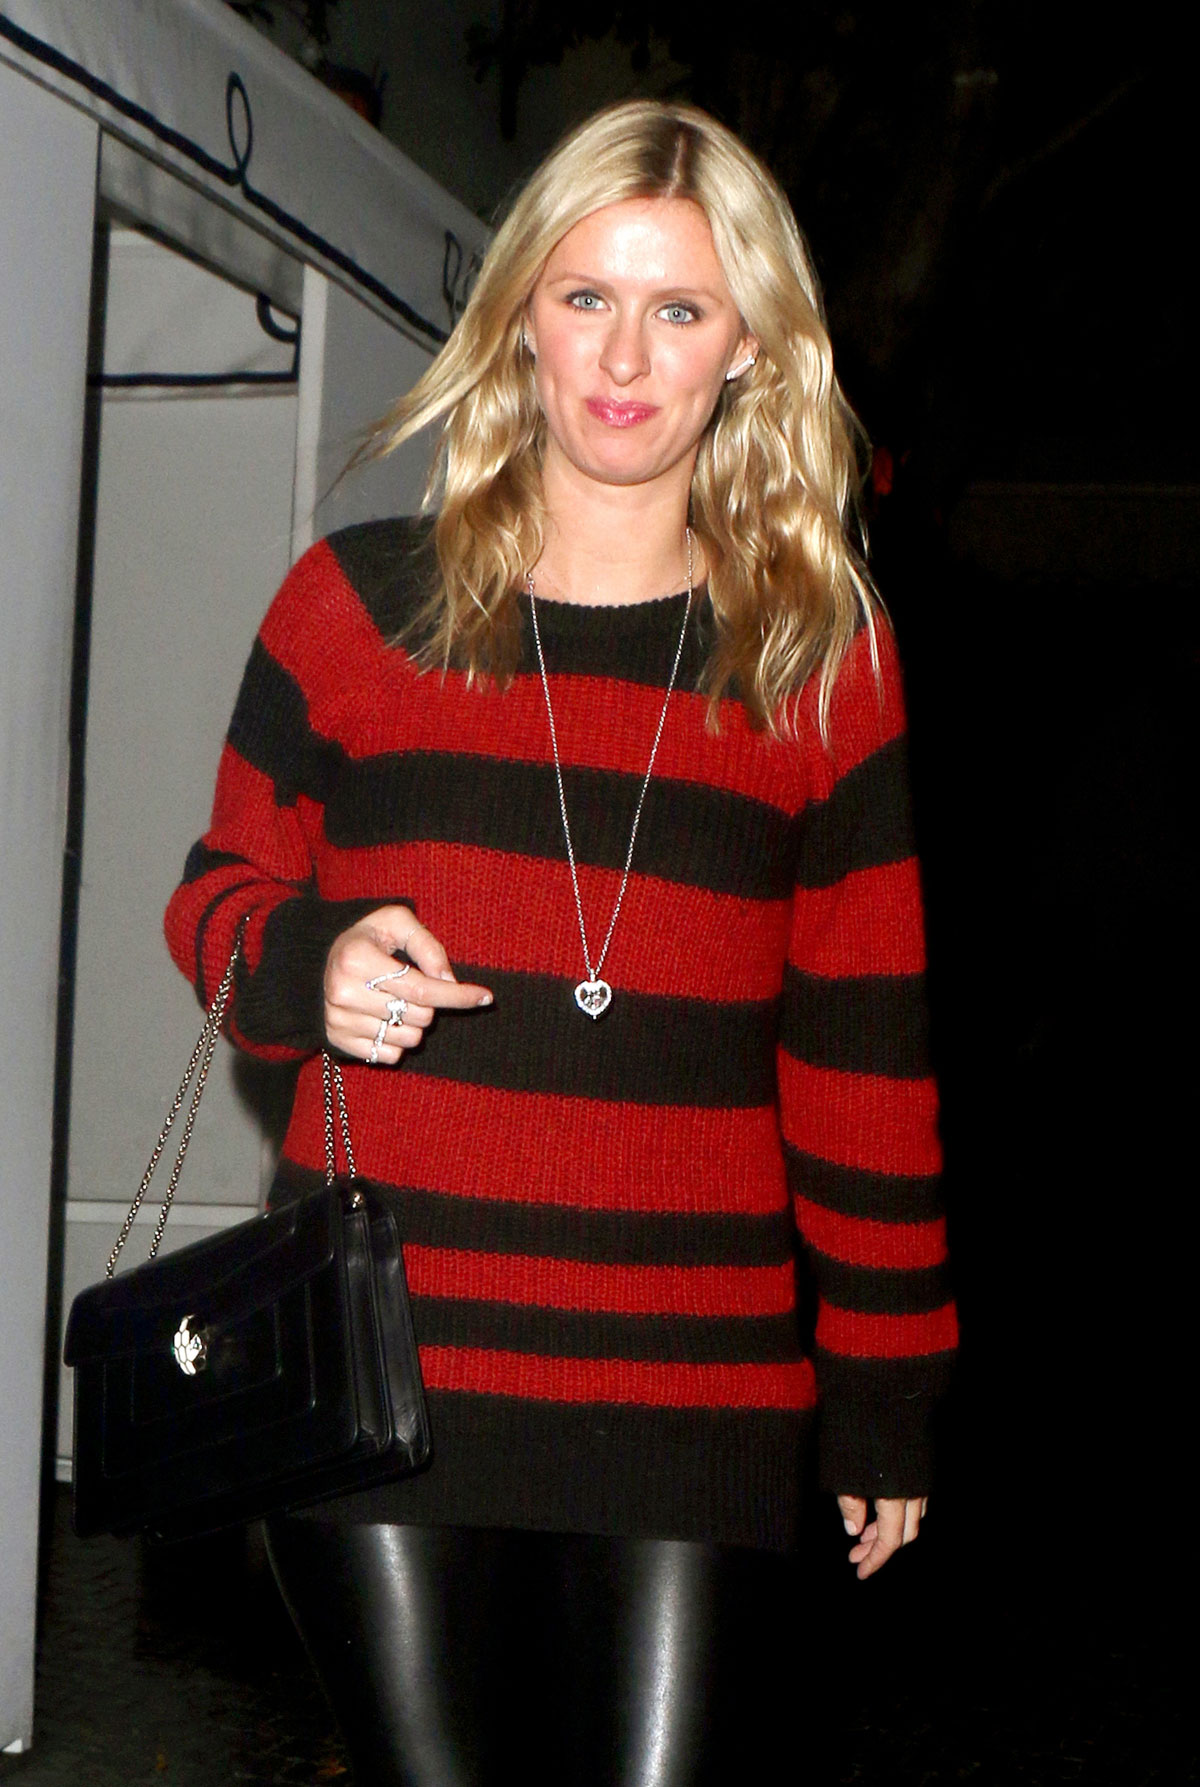 Nicky Hilton leaving Chateau Marmont restaurant